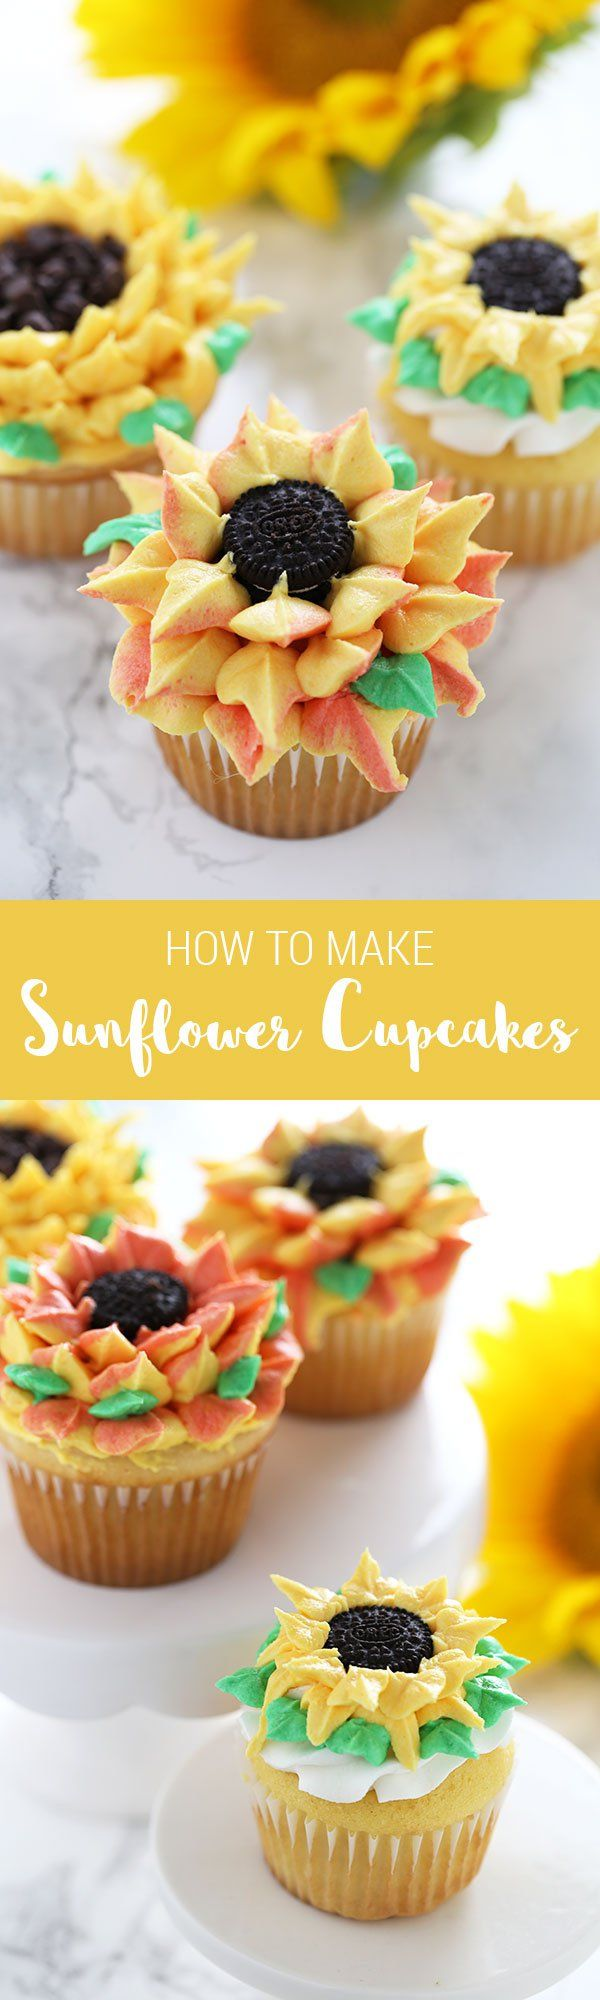 Decorate GORGEOUS fun sunflower cupcakes... ANYONE can do these!!